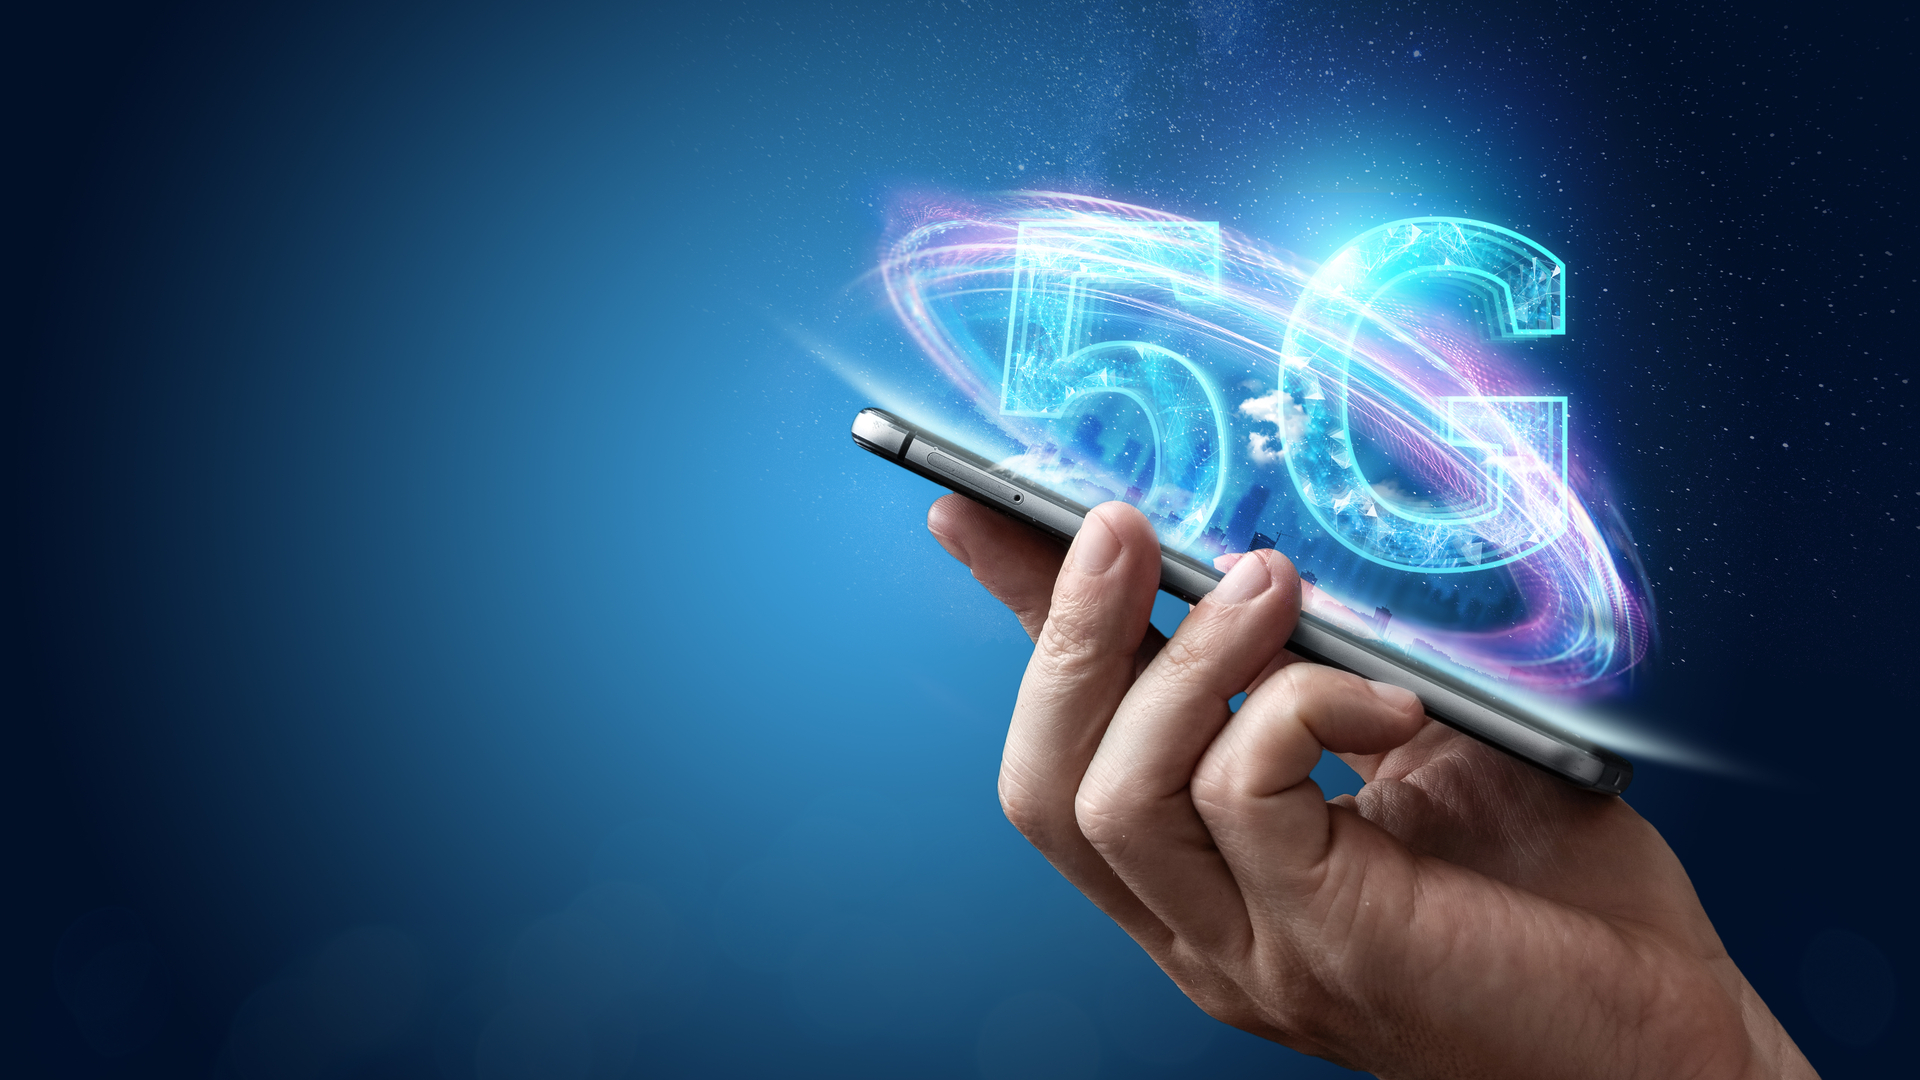 5G optimism held back by security and cost fears